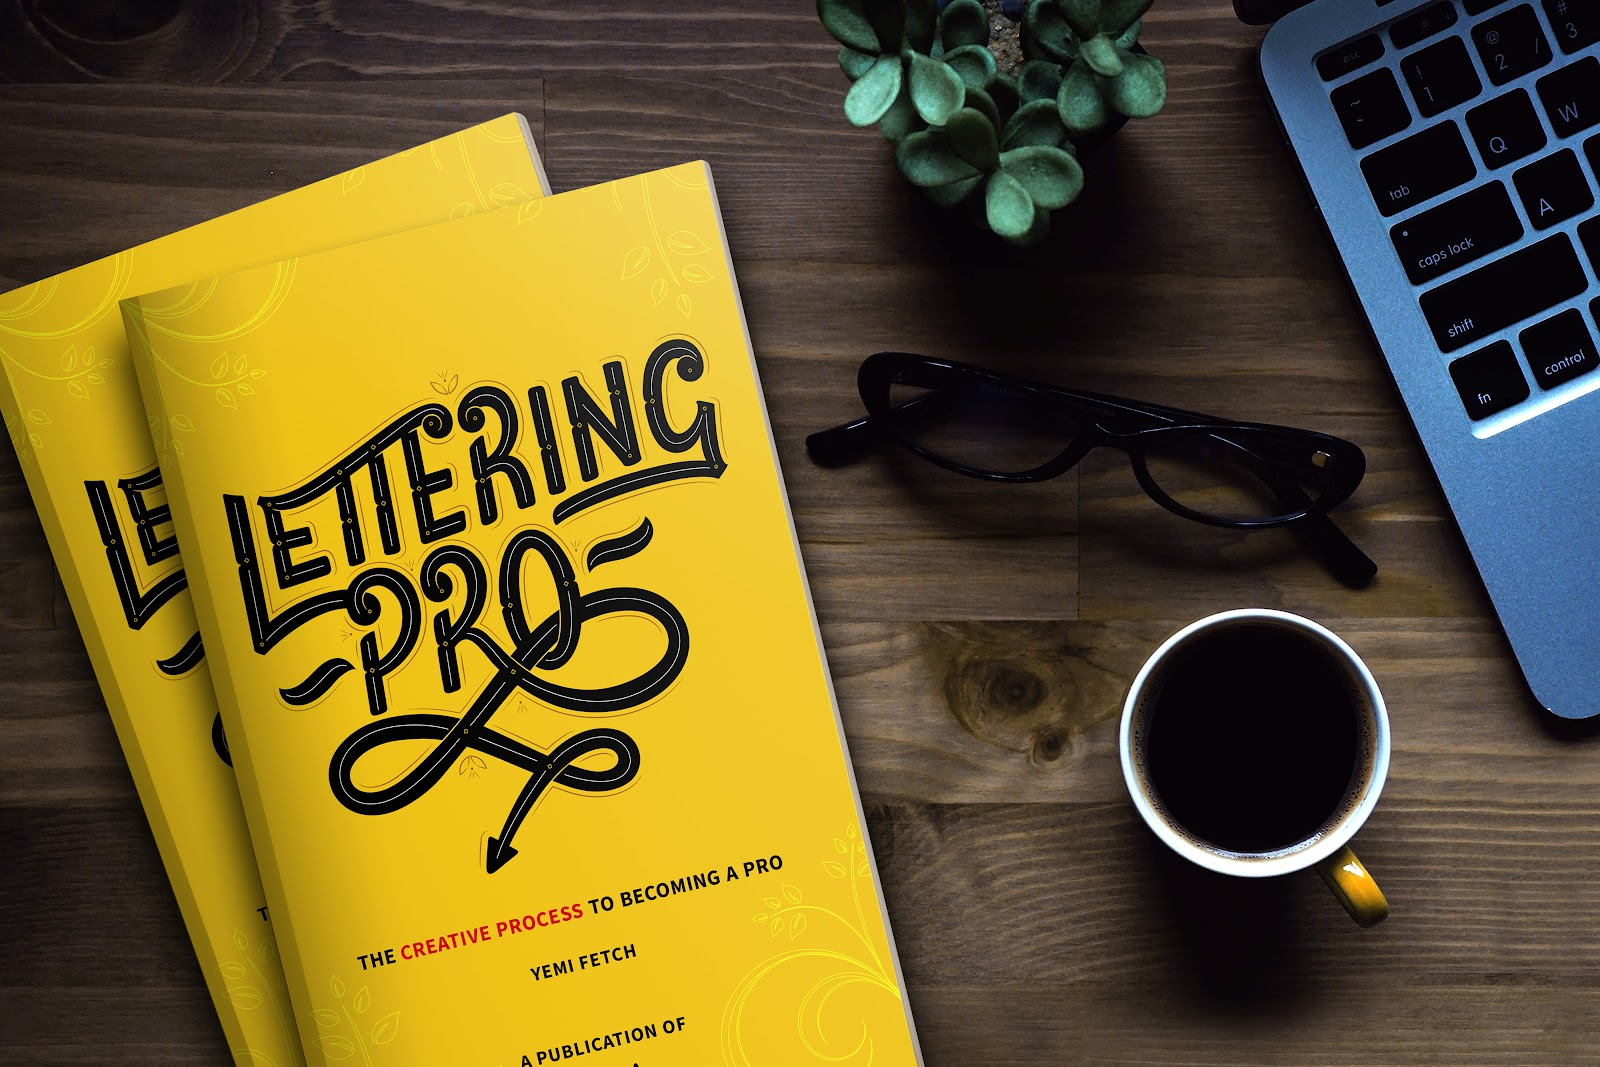 Yemi Fetch: The Making of a Lettering Pro